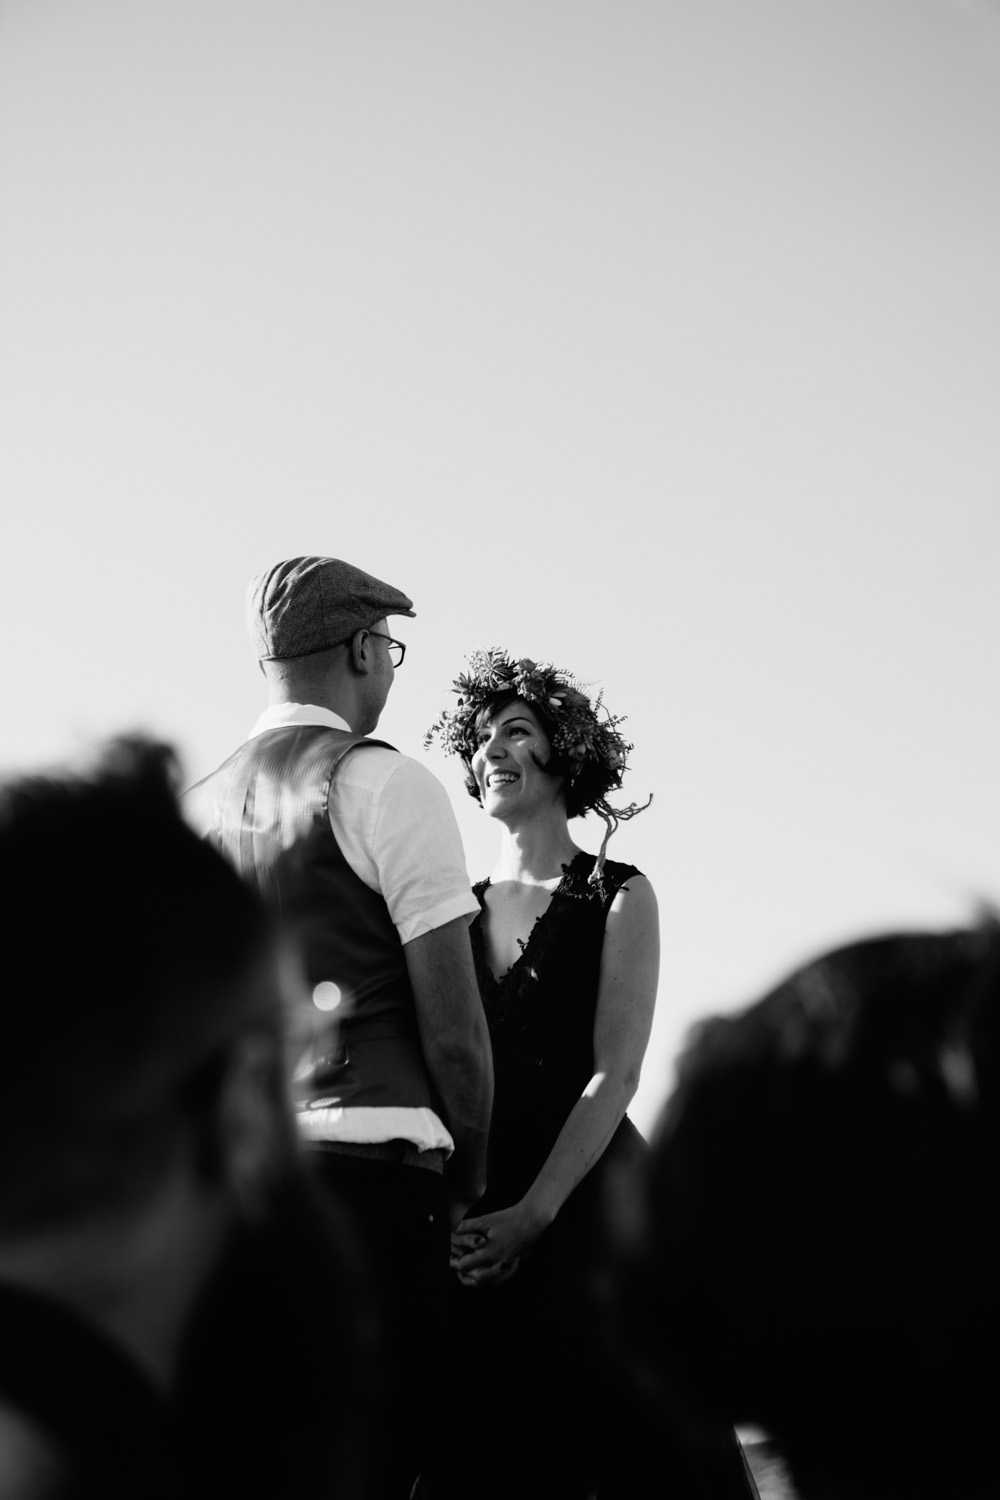 cambria beach wedding-154.jpg